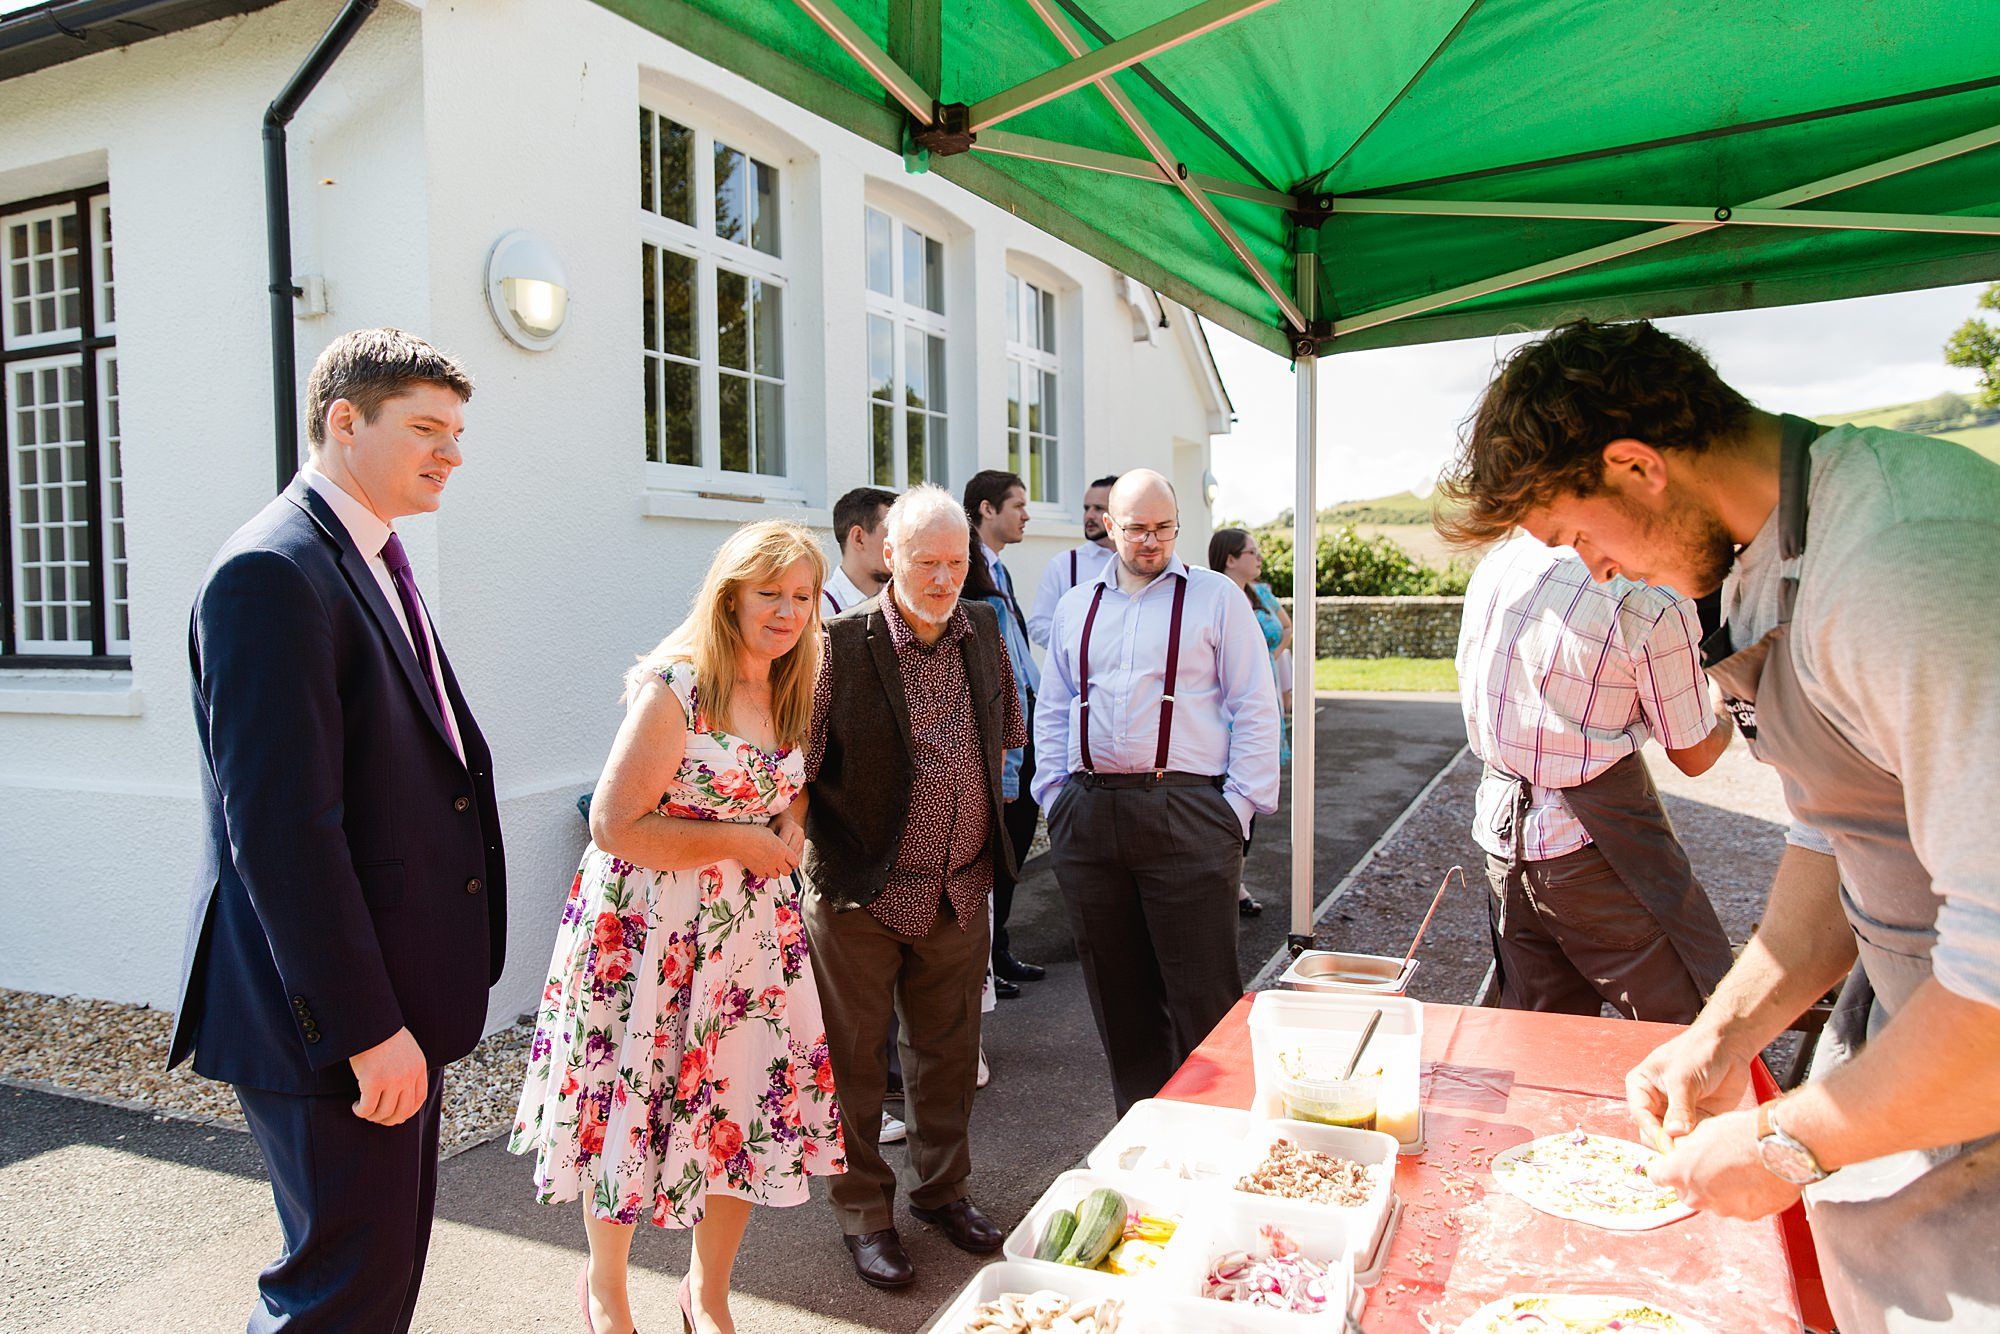 Fun village hall wedding guests enjoying pizza van